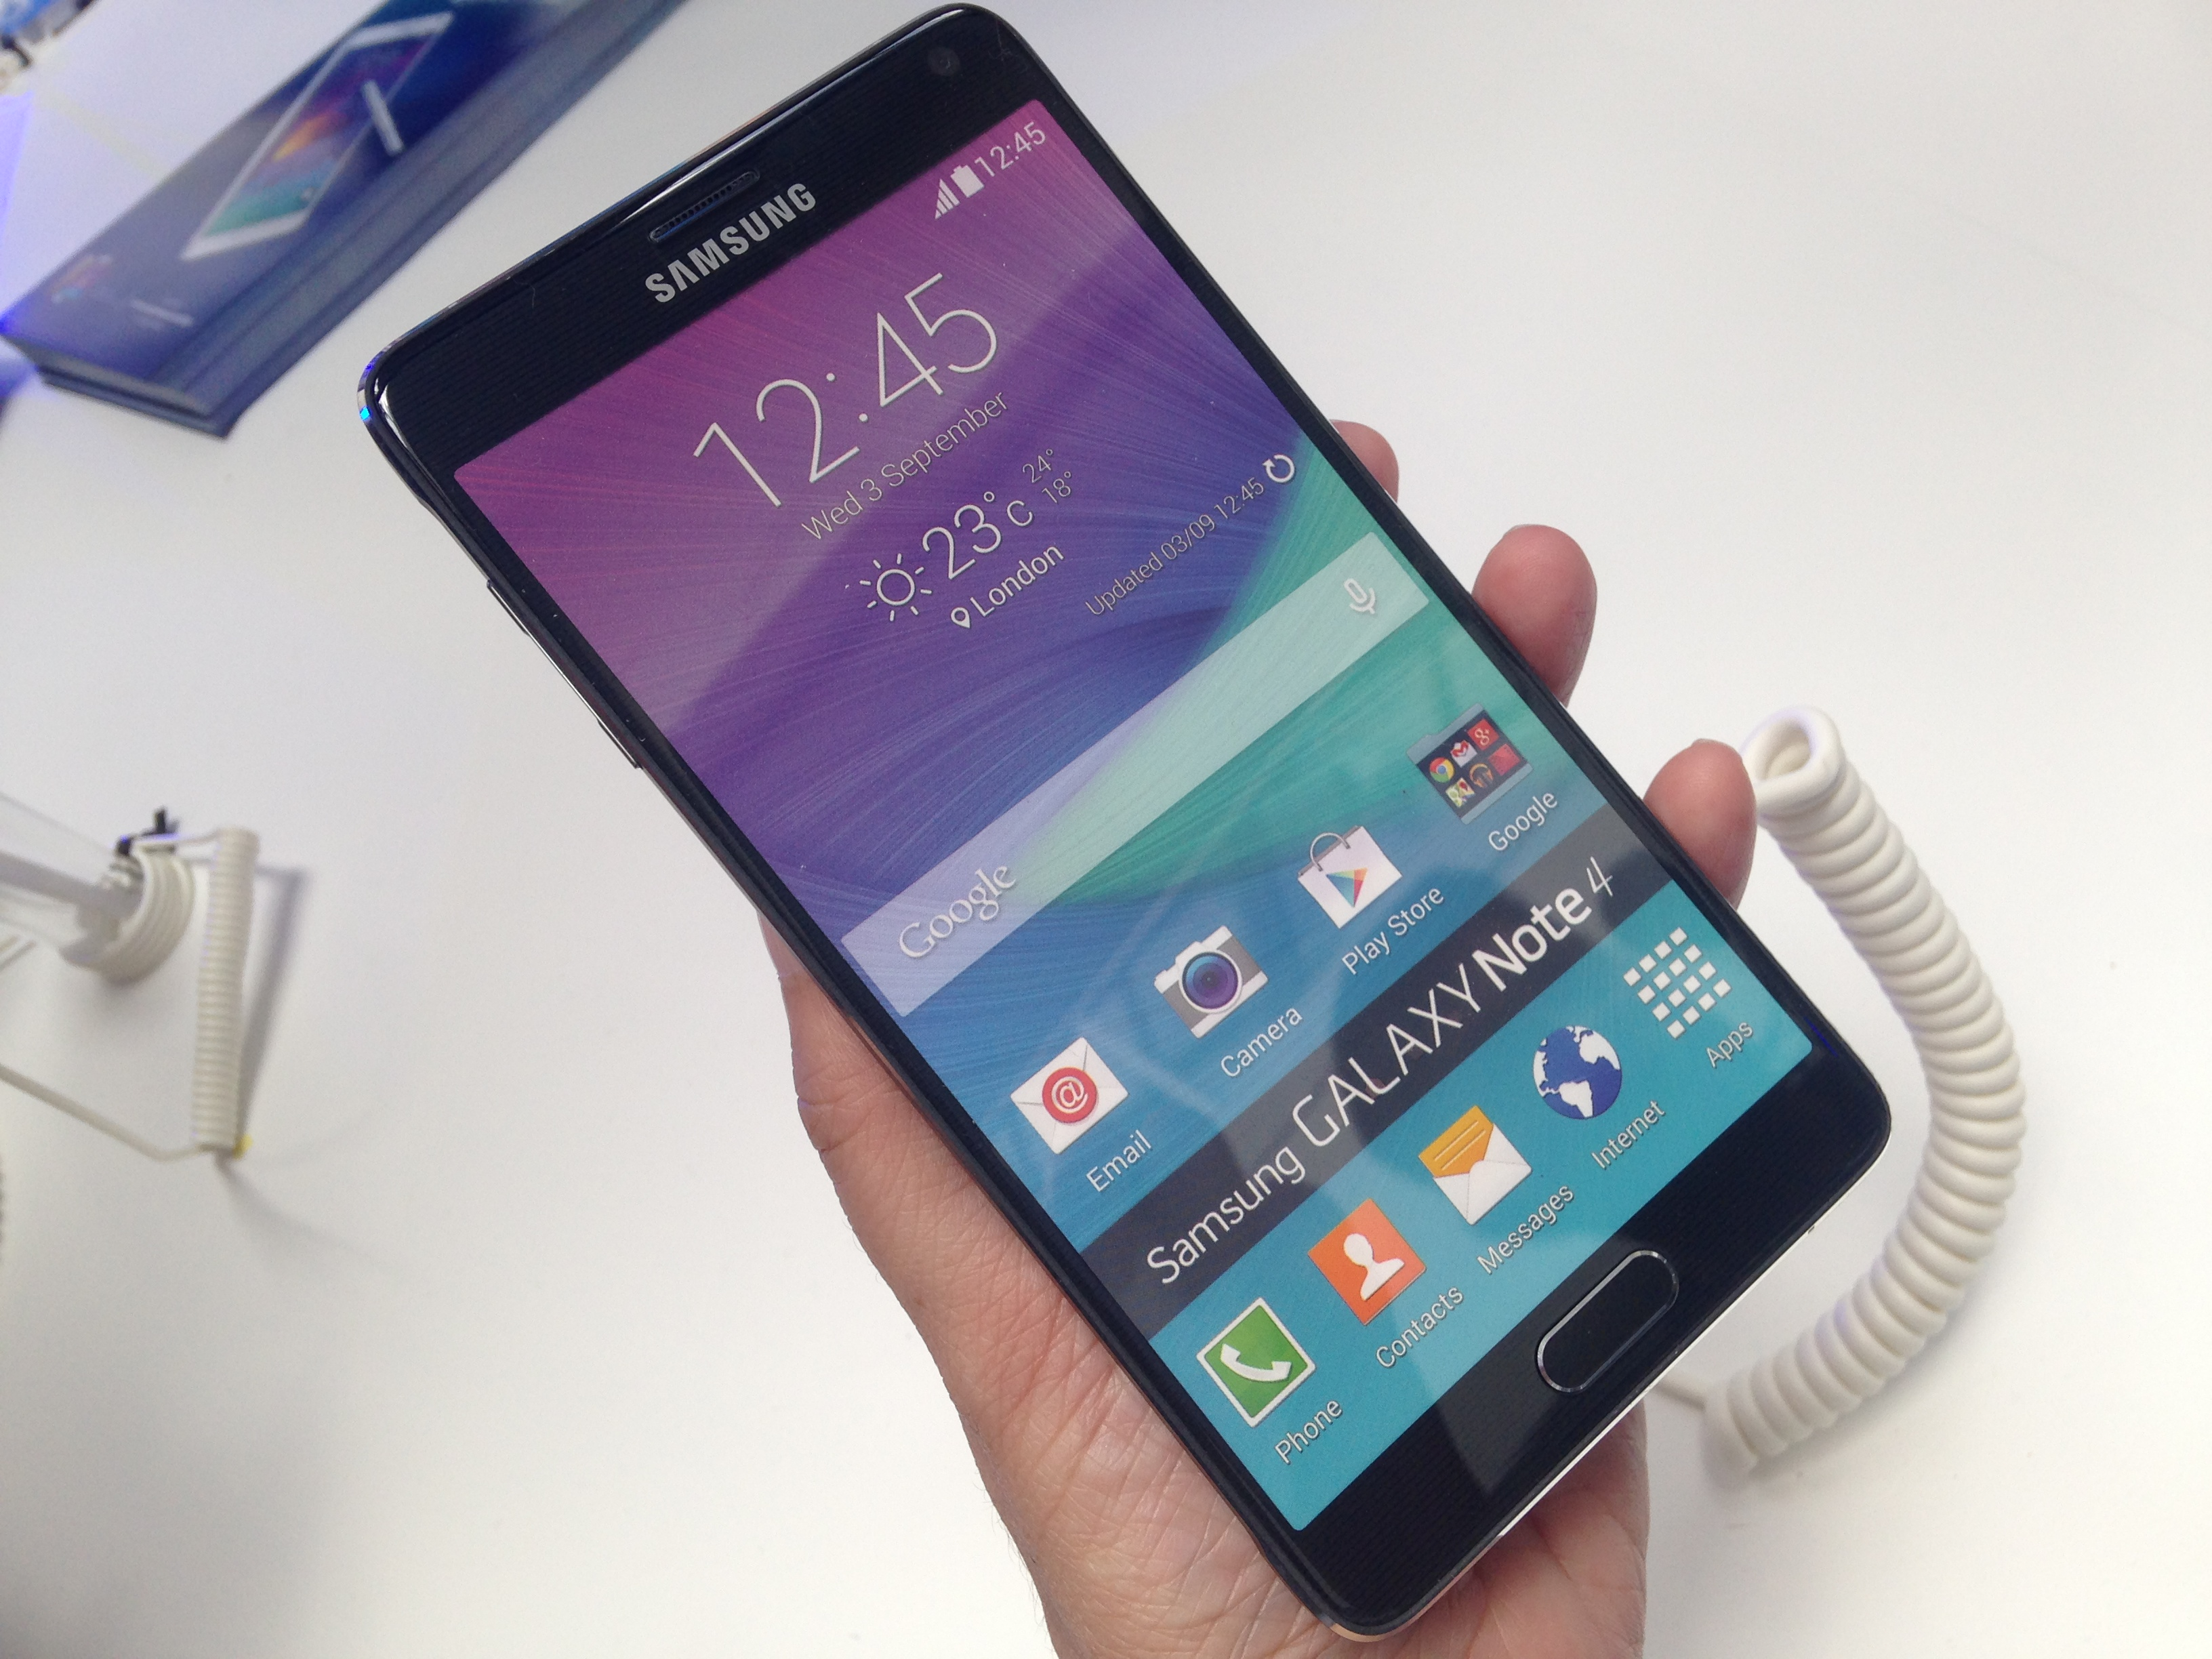 Samsung Galaxy Note 4 now available in PH - Upgrade Magazine